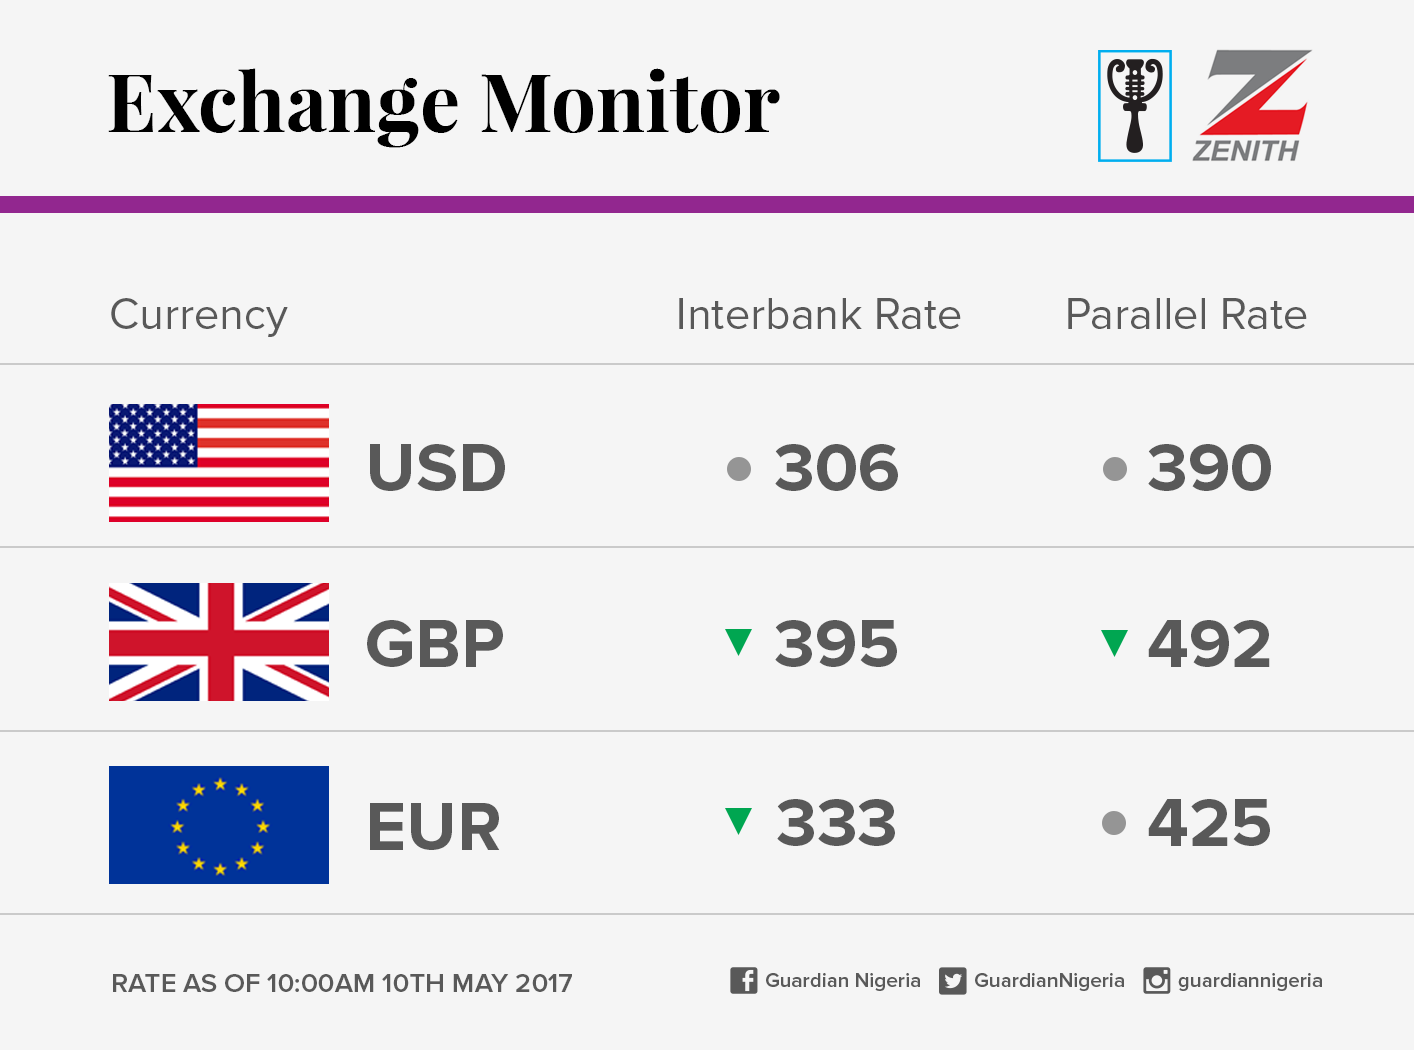 The Dollar To Naira Pounds And Euros Exchange Rate For Today Ngn Usd Wednesday 10th May 2017 Black Market Bank Rates In Lagos